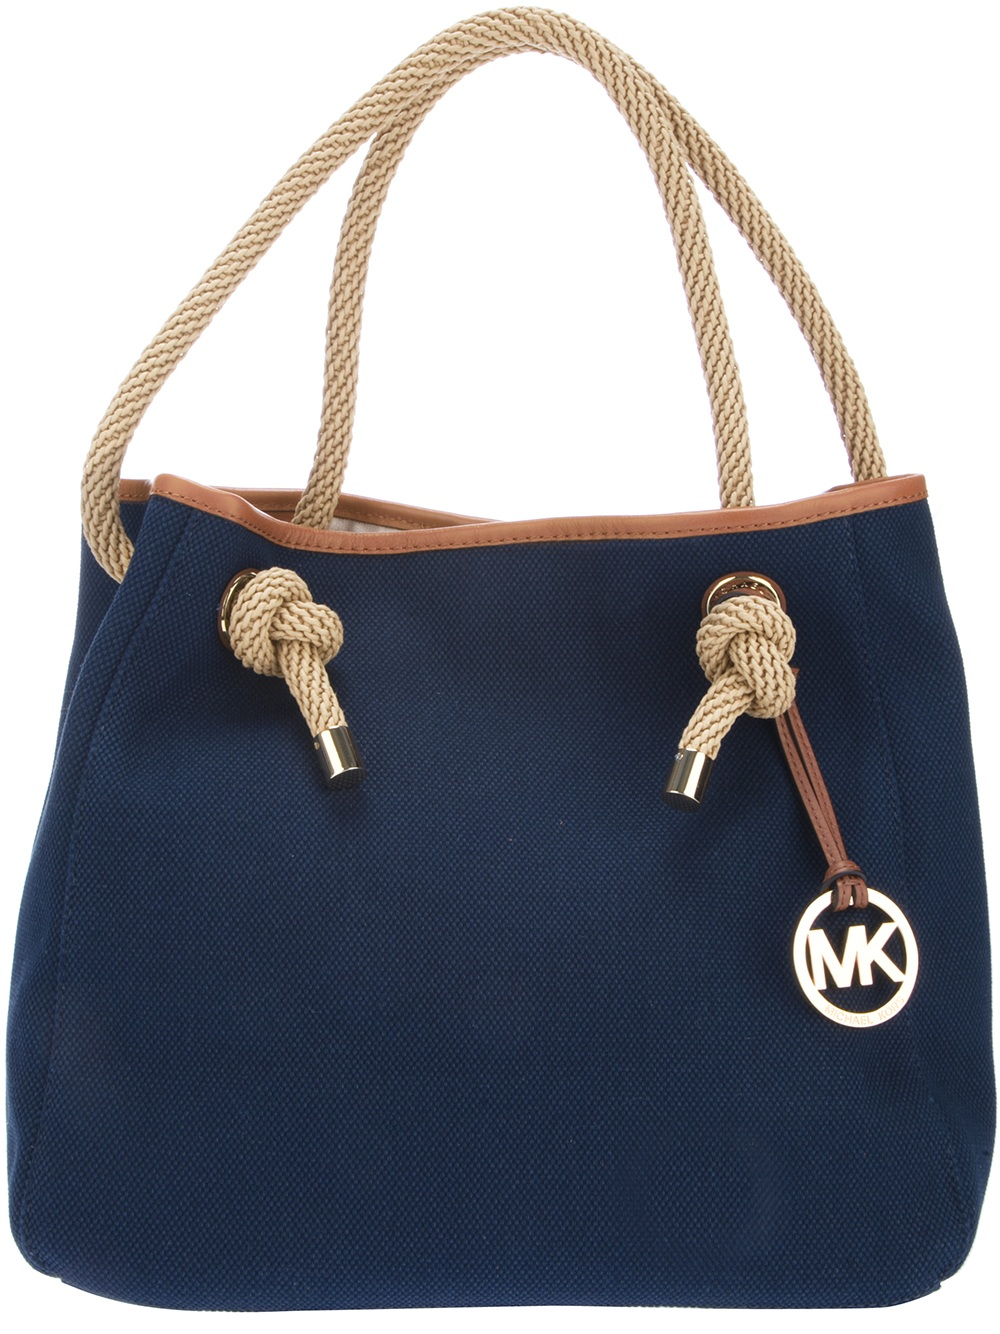 michael michael kors rope handle shopper tote in blue lyst. Black Bedroom Furniture Sets. Home Design Ideas